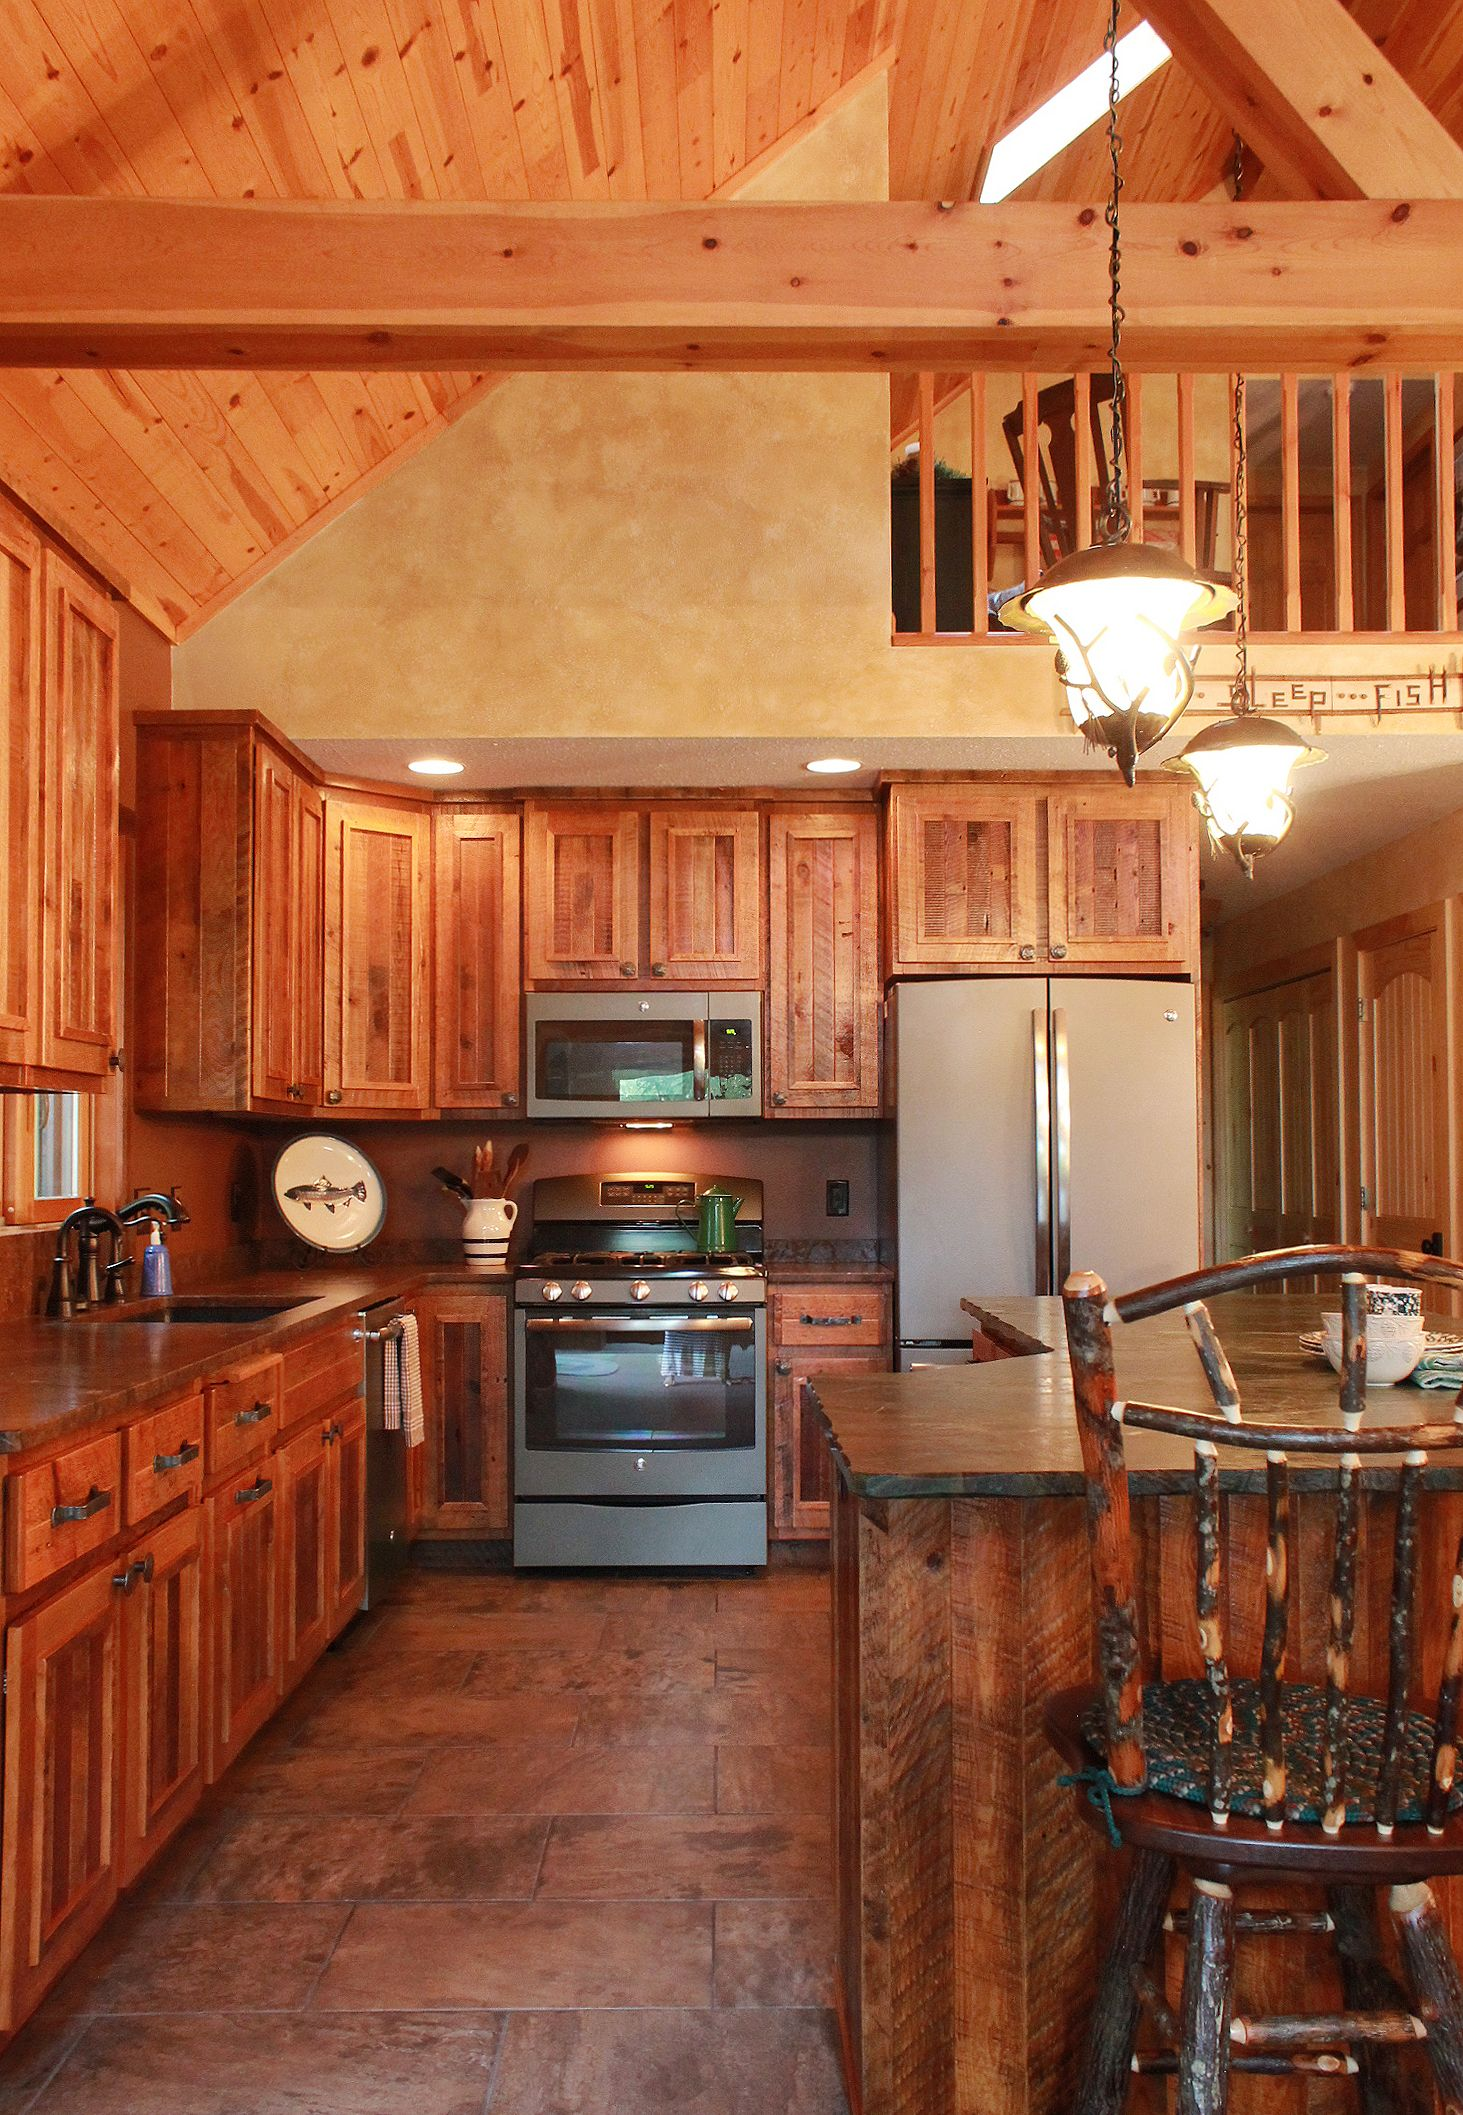 This Rustic Kitchen Is From A Wisconsin Log Home. These Custom Made Kitchen  Cabinets